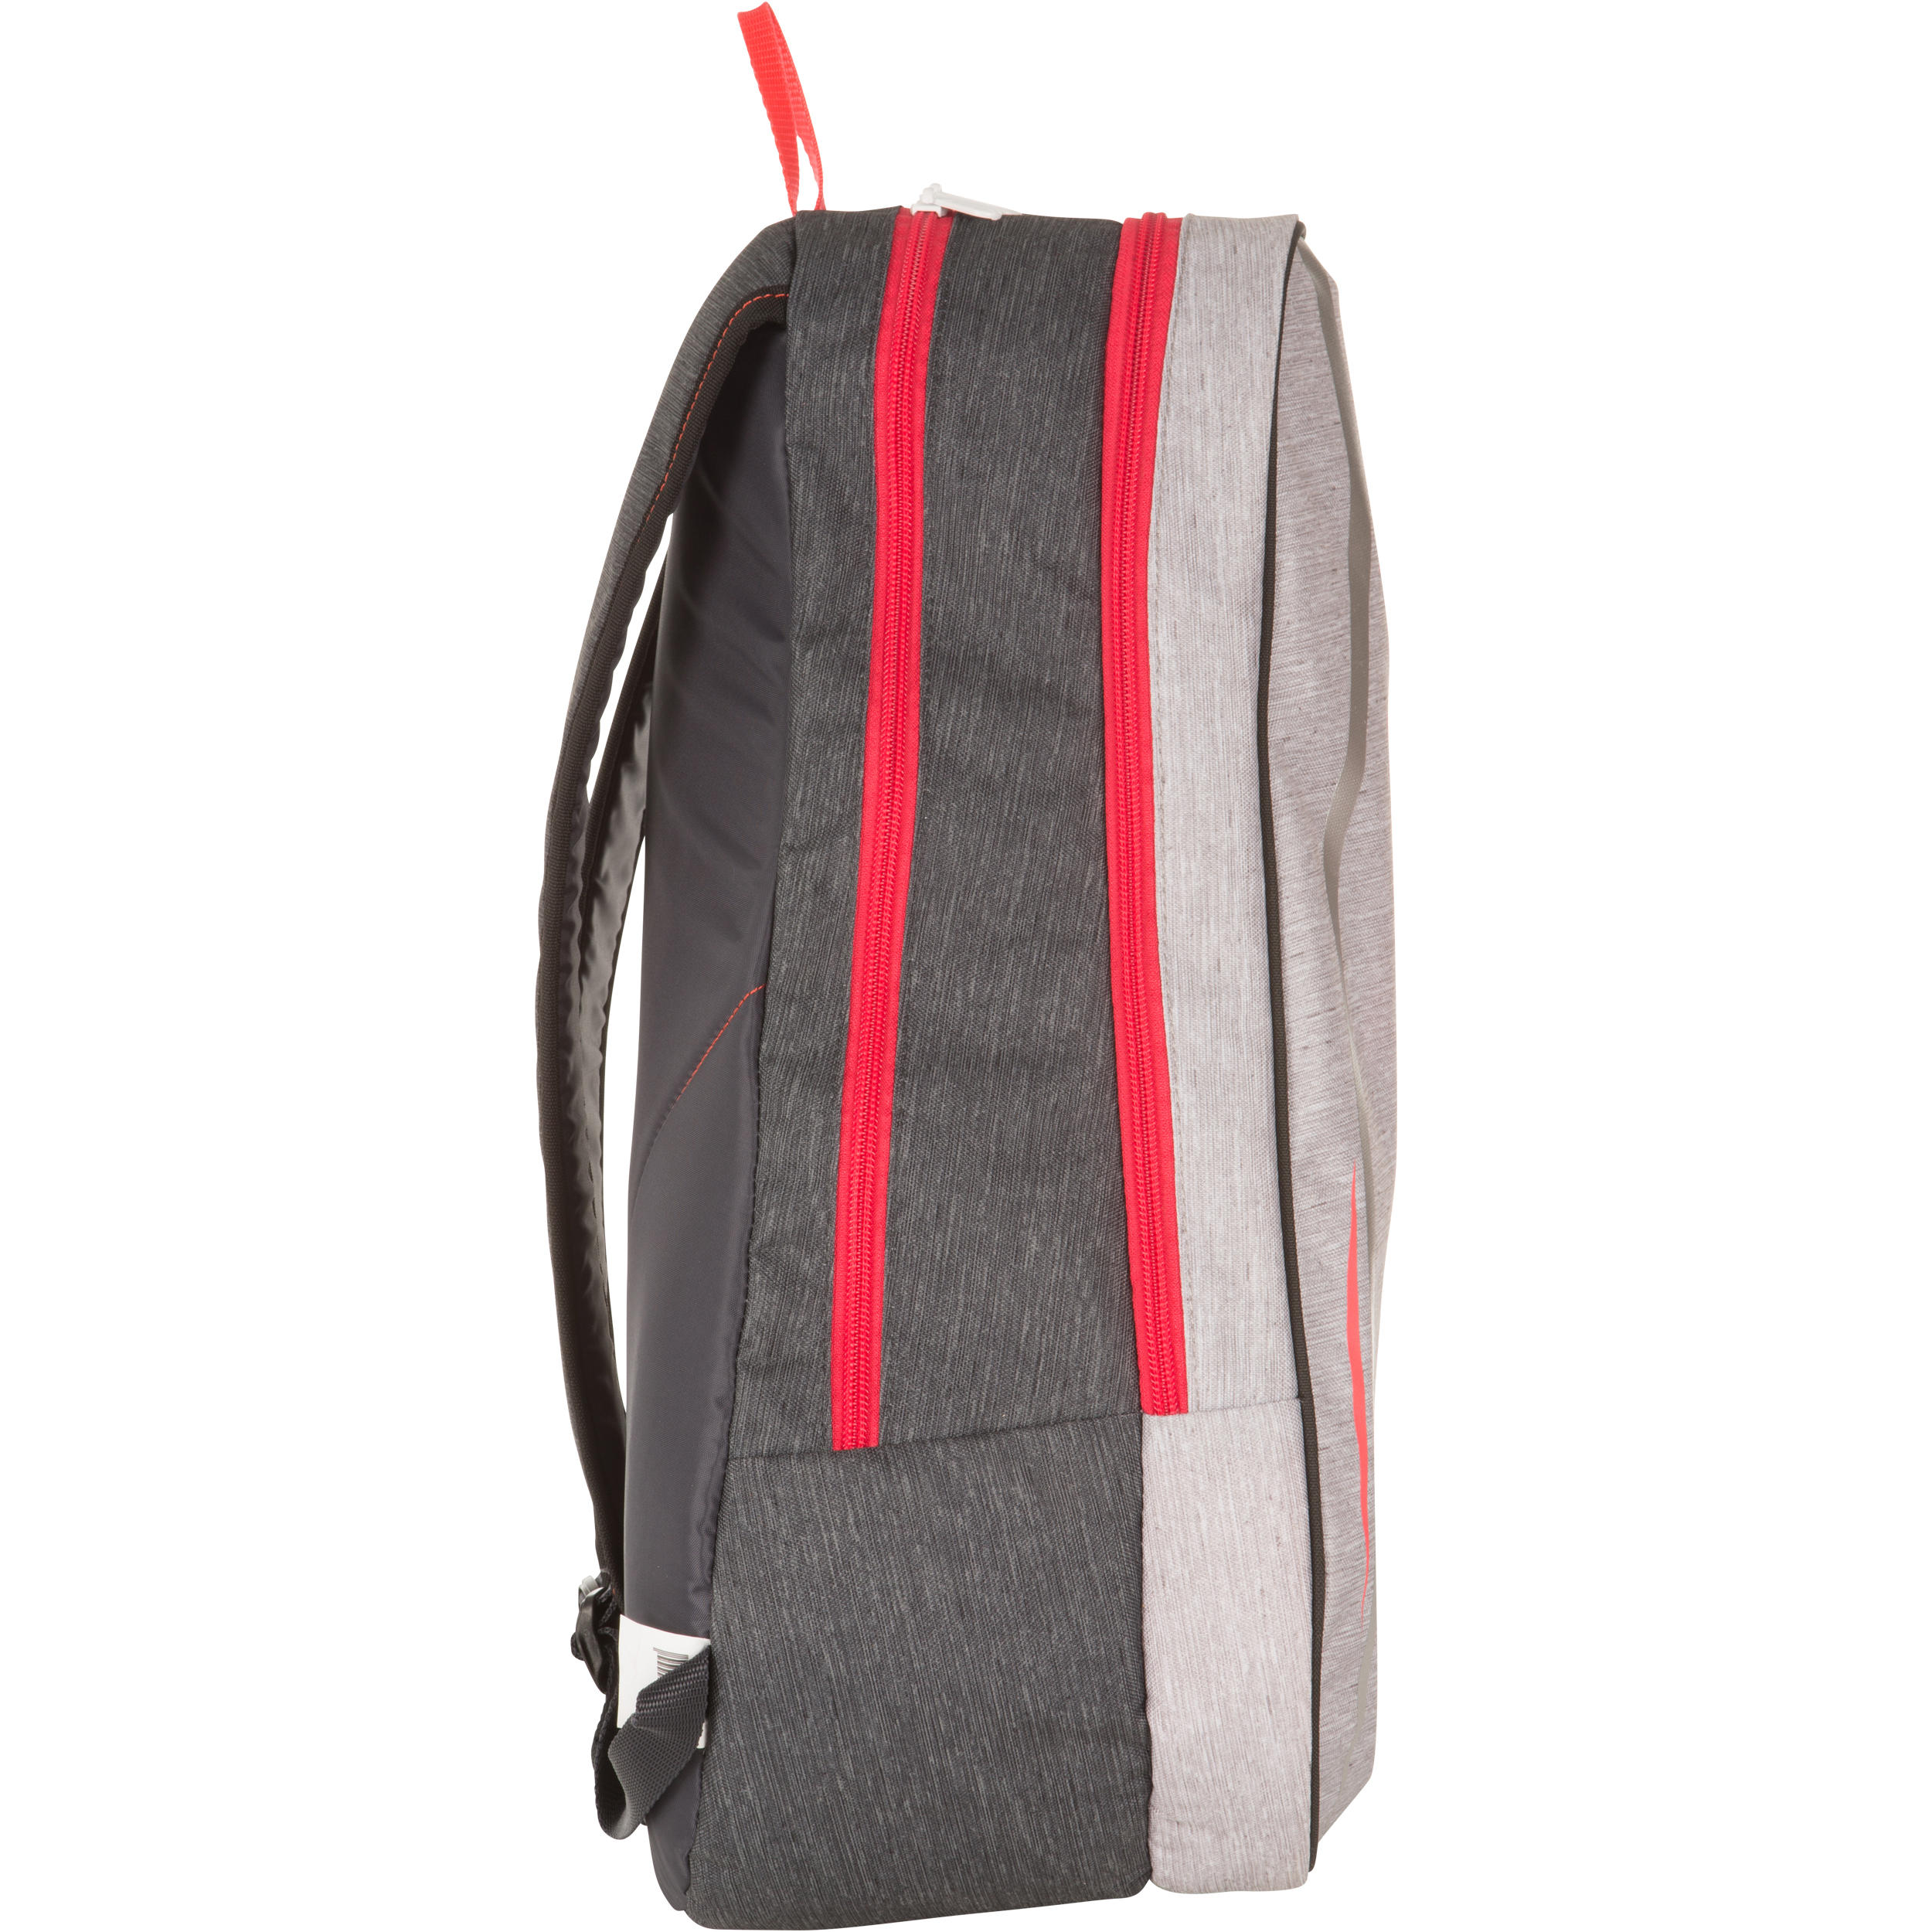 Racket Sports Backpack - BP 100 Grey and Pink